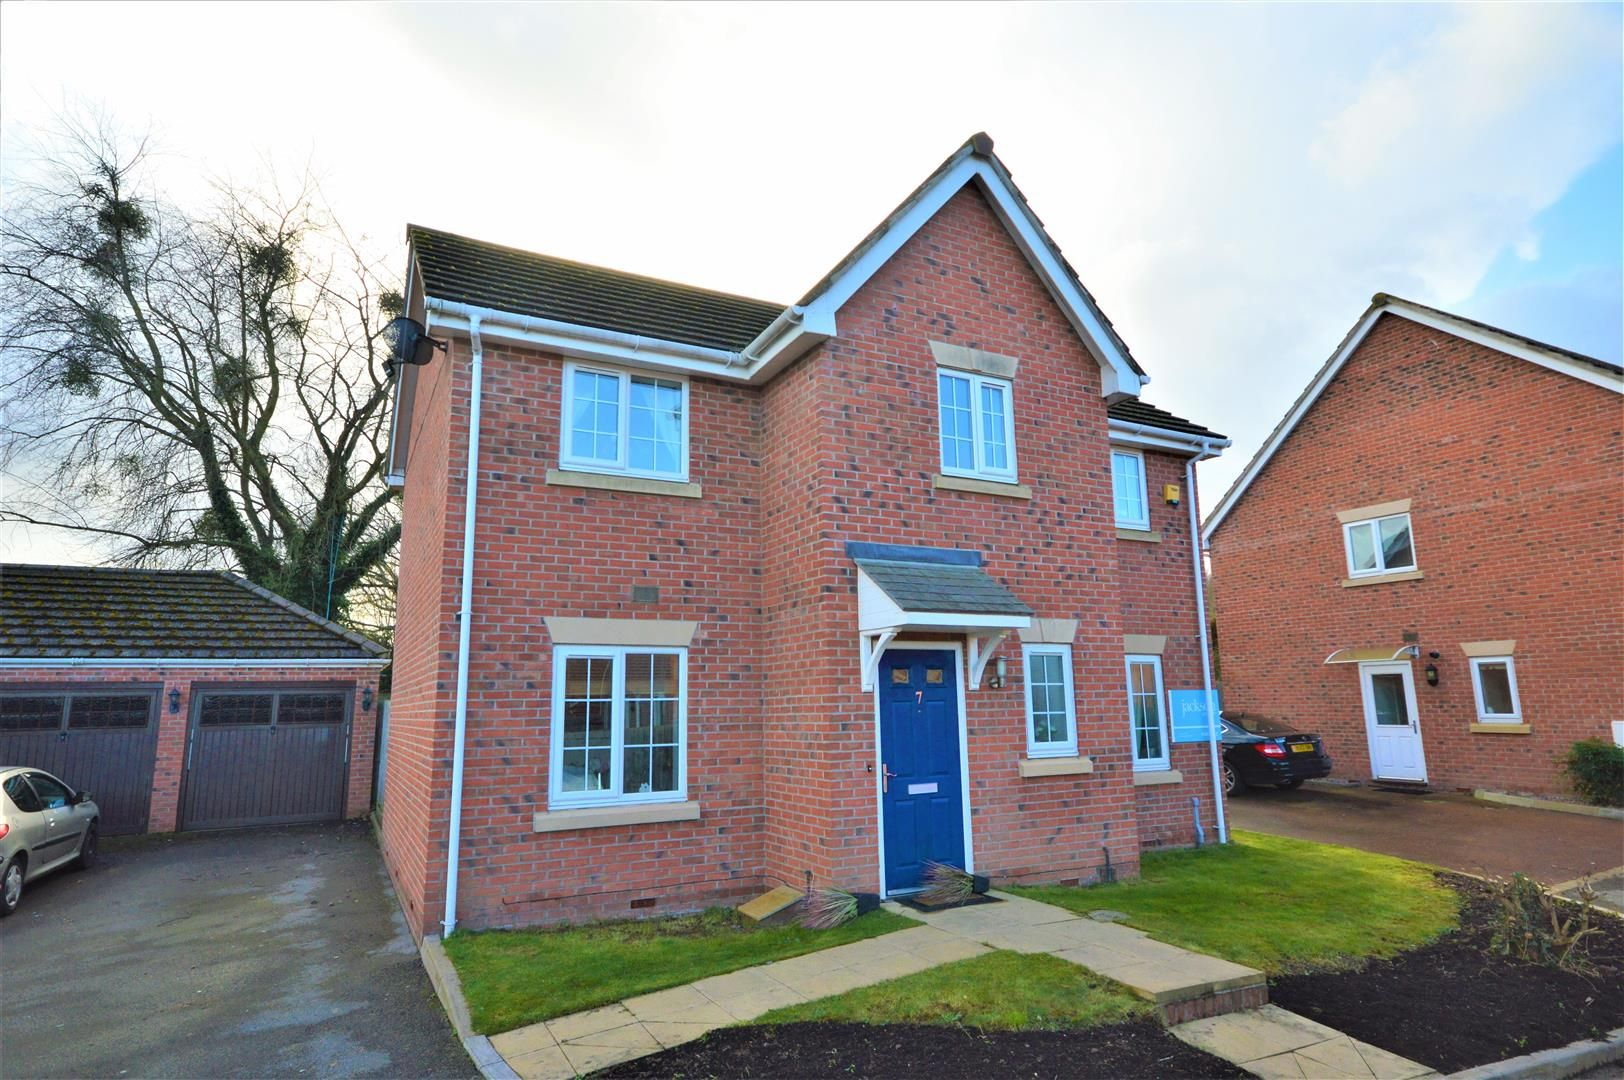 3 bed detached for sale in Hereford 4